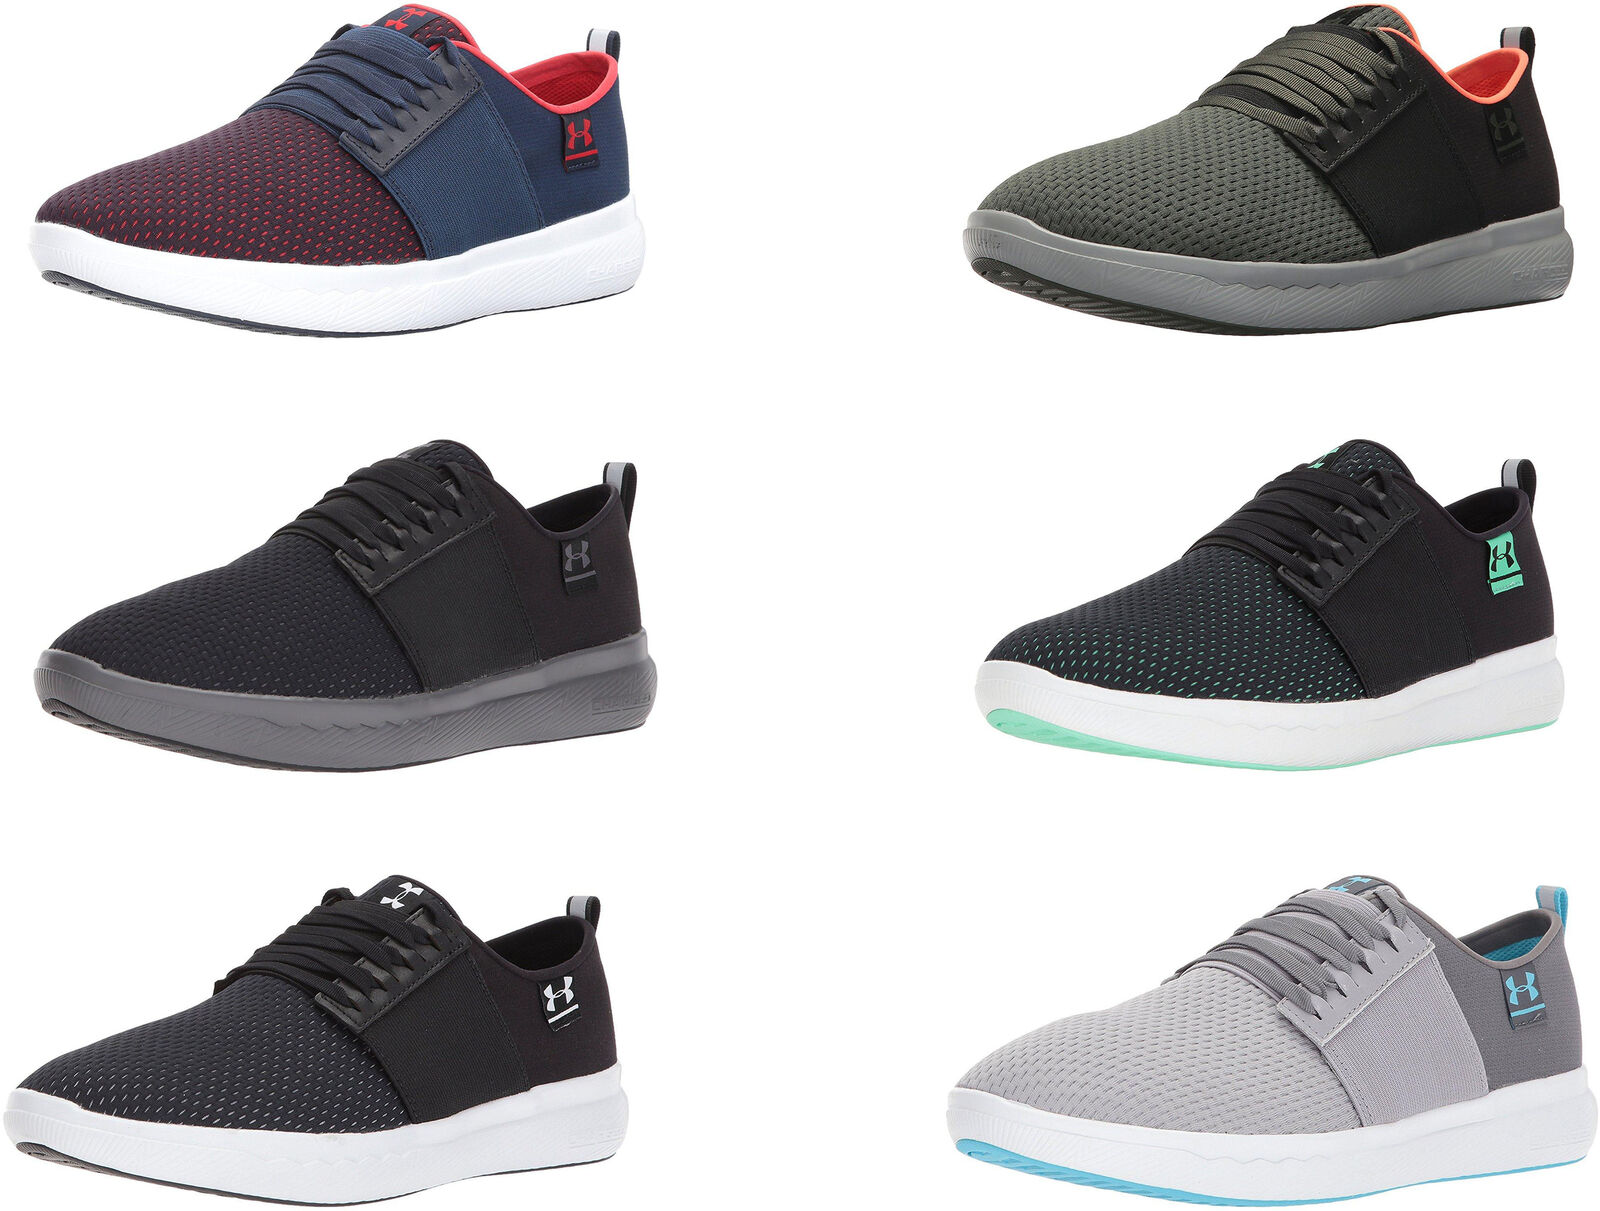 cheap for discount f2d92 180f6 Details about Under Armour Men's Charged 24/7 NU Shoes, 6 Colors